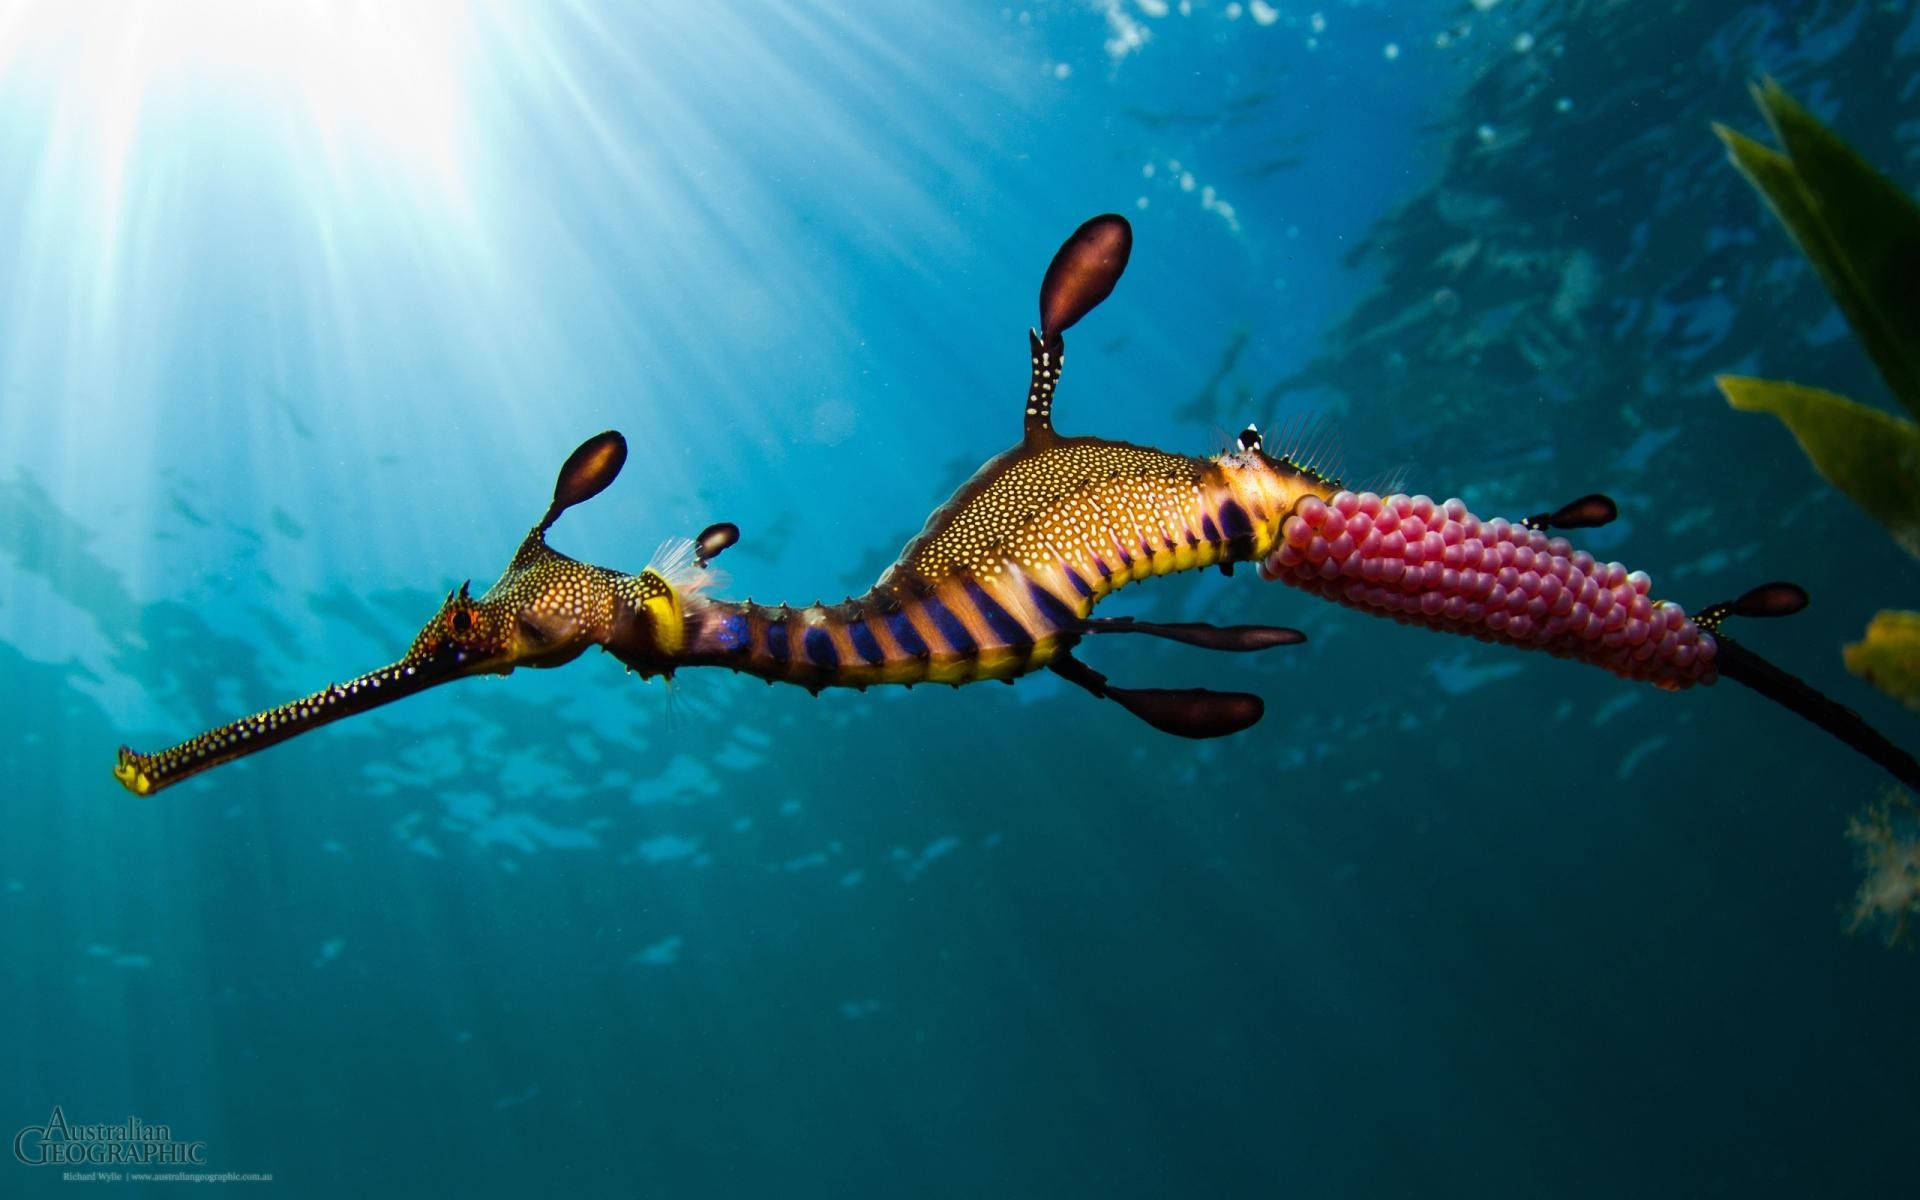 1920x1080 You Can Download Sea Creature Hd Wallpapers